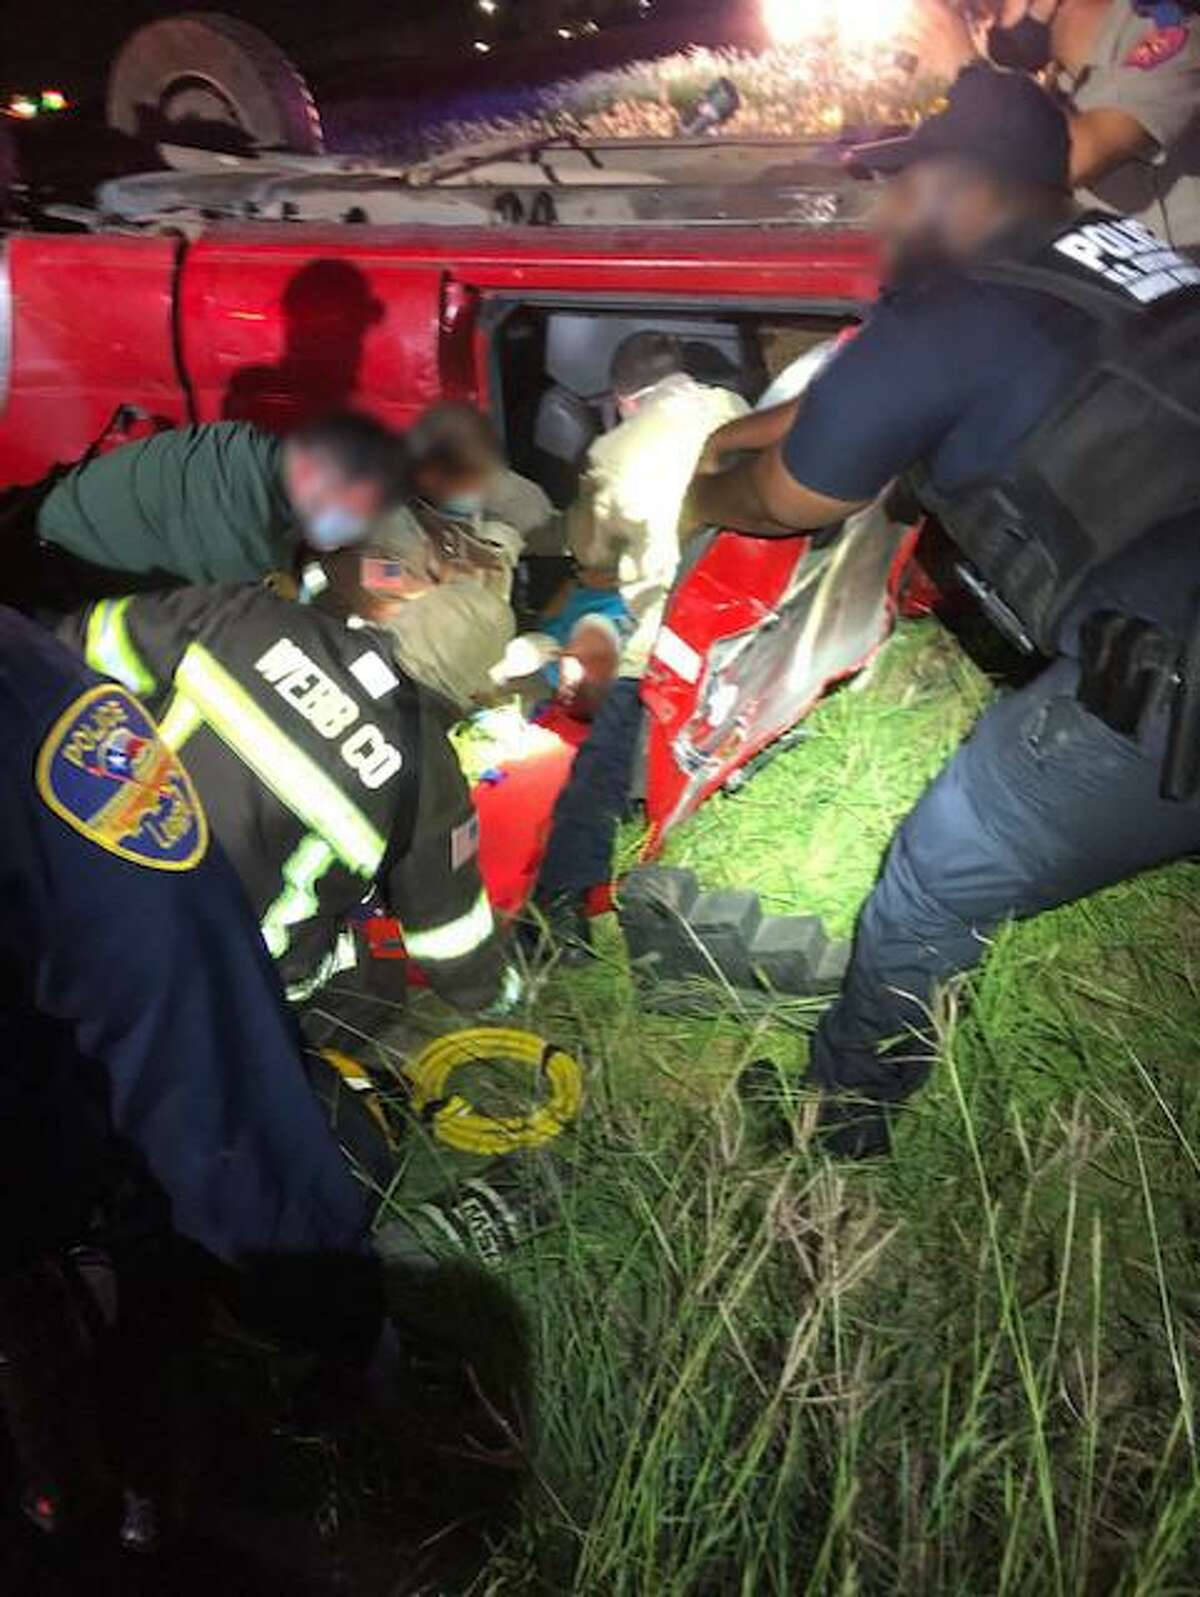 First responders are seen extracting a driver who was involved in a rollover crash in north Laredo early Thursday. The motorist was medically cleared at the scene.